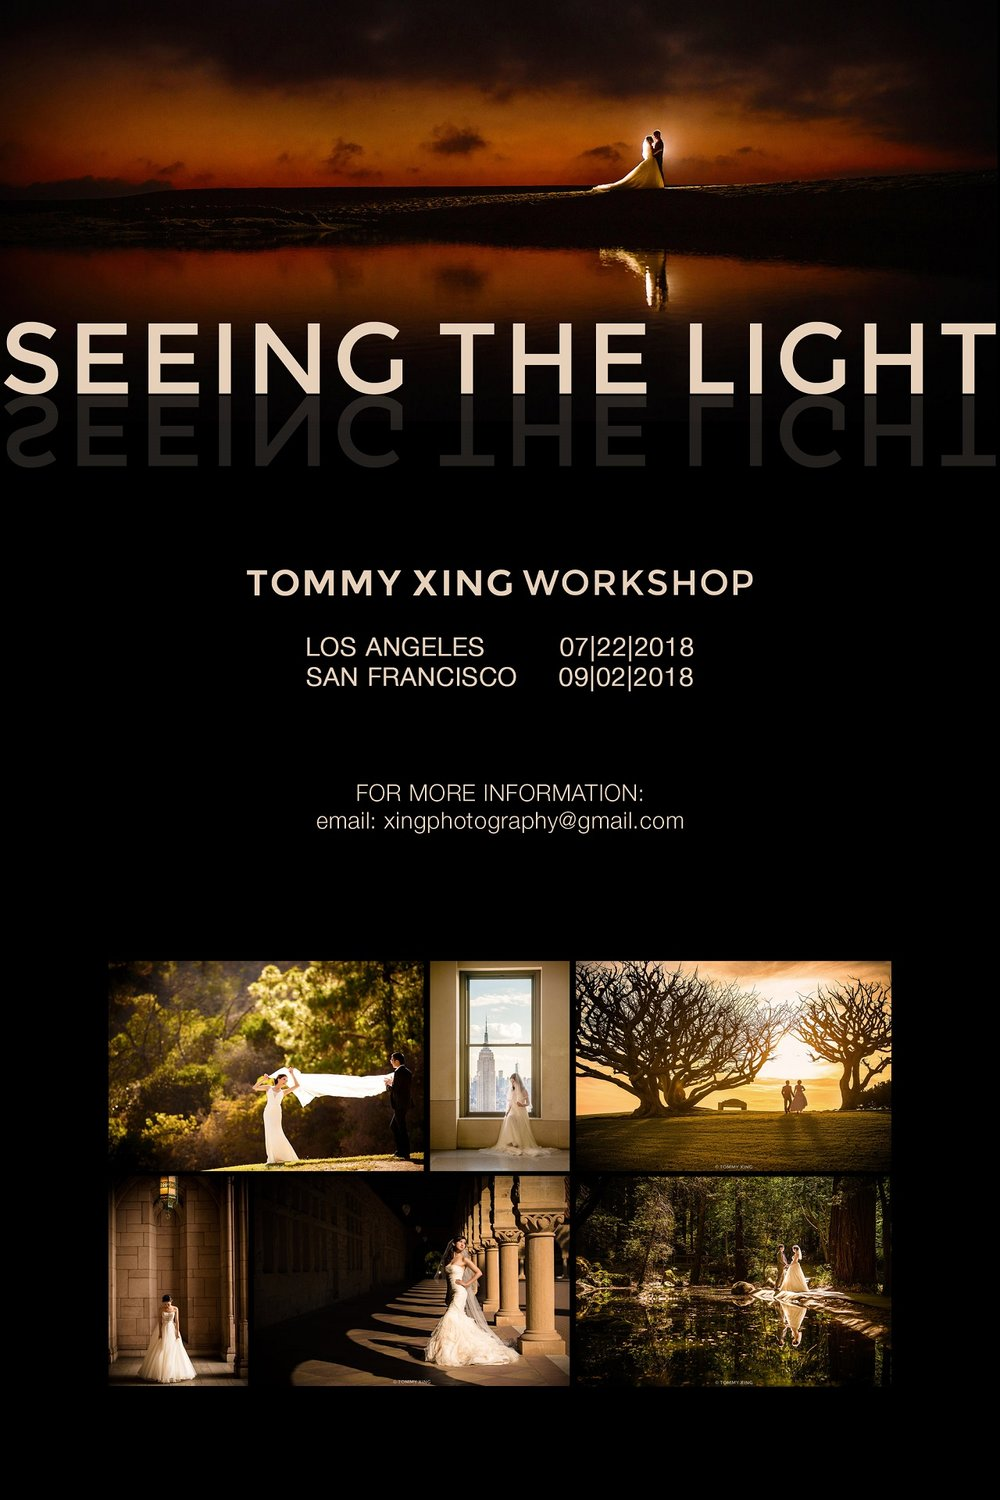 美国洛杉矶旧金山婚礼婚纱摄影师Tommy Xing los angeles best wedding photography workshop.jpg